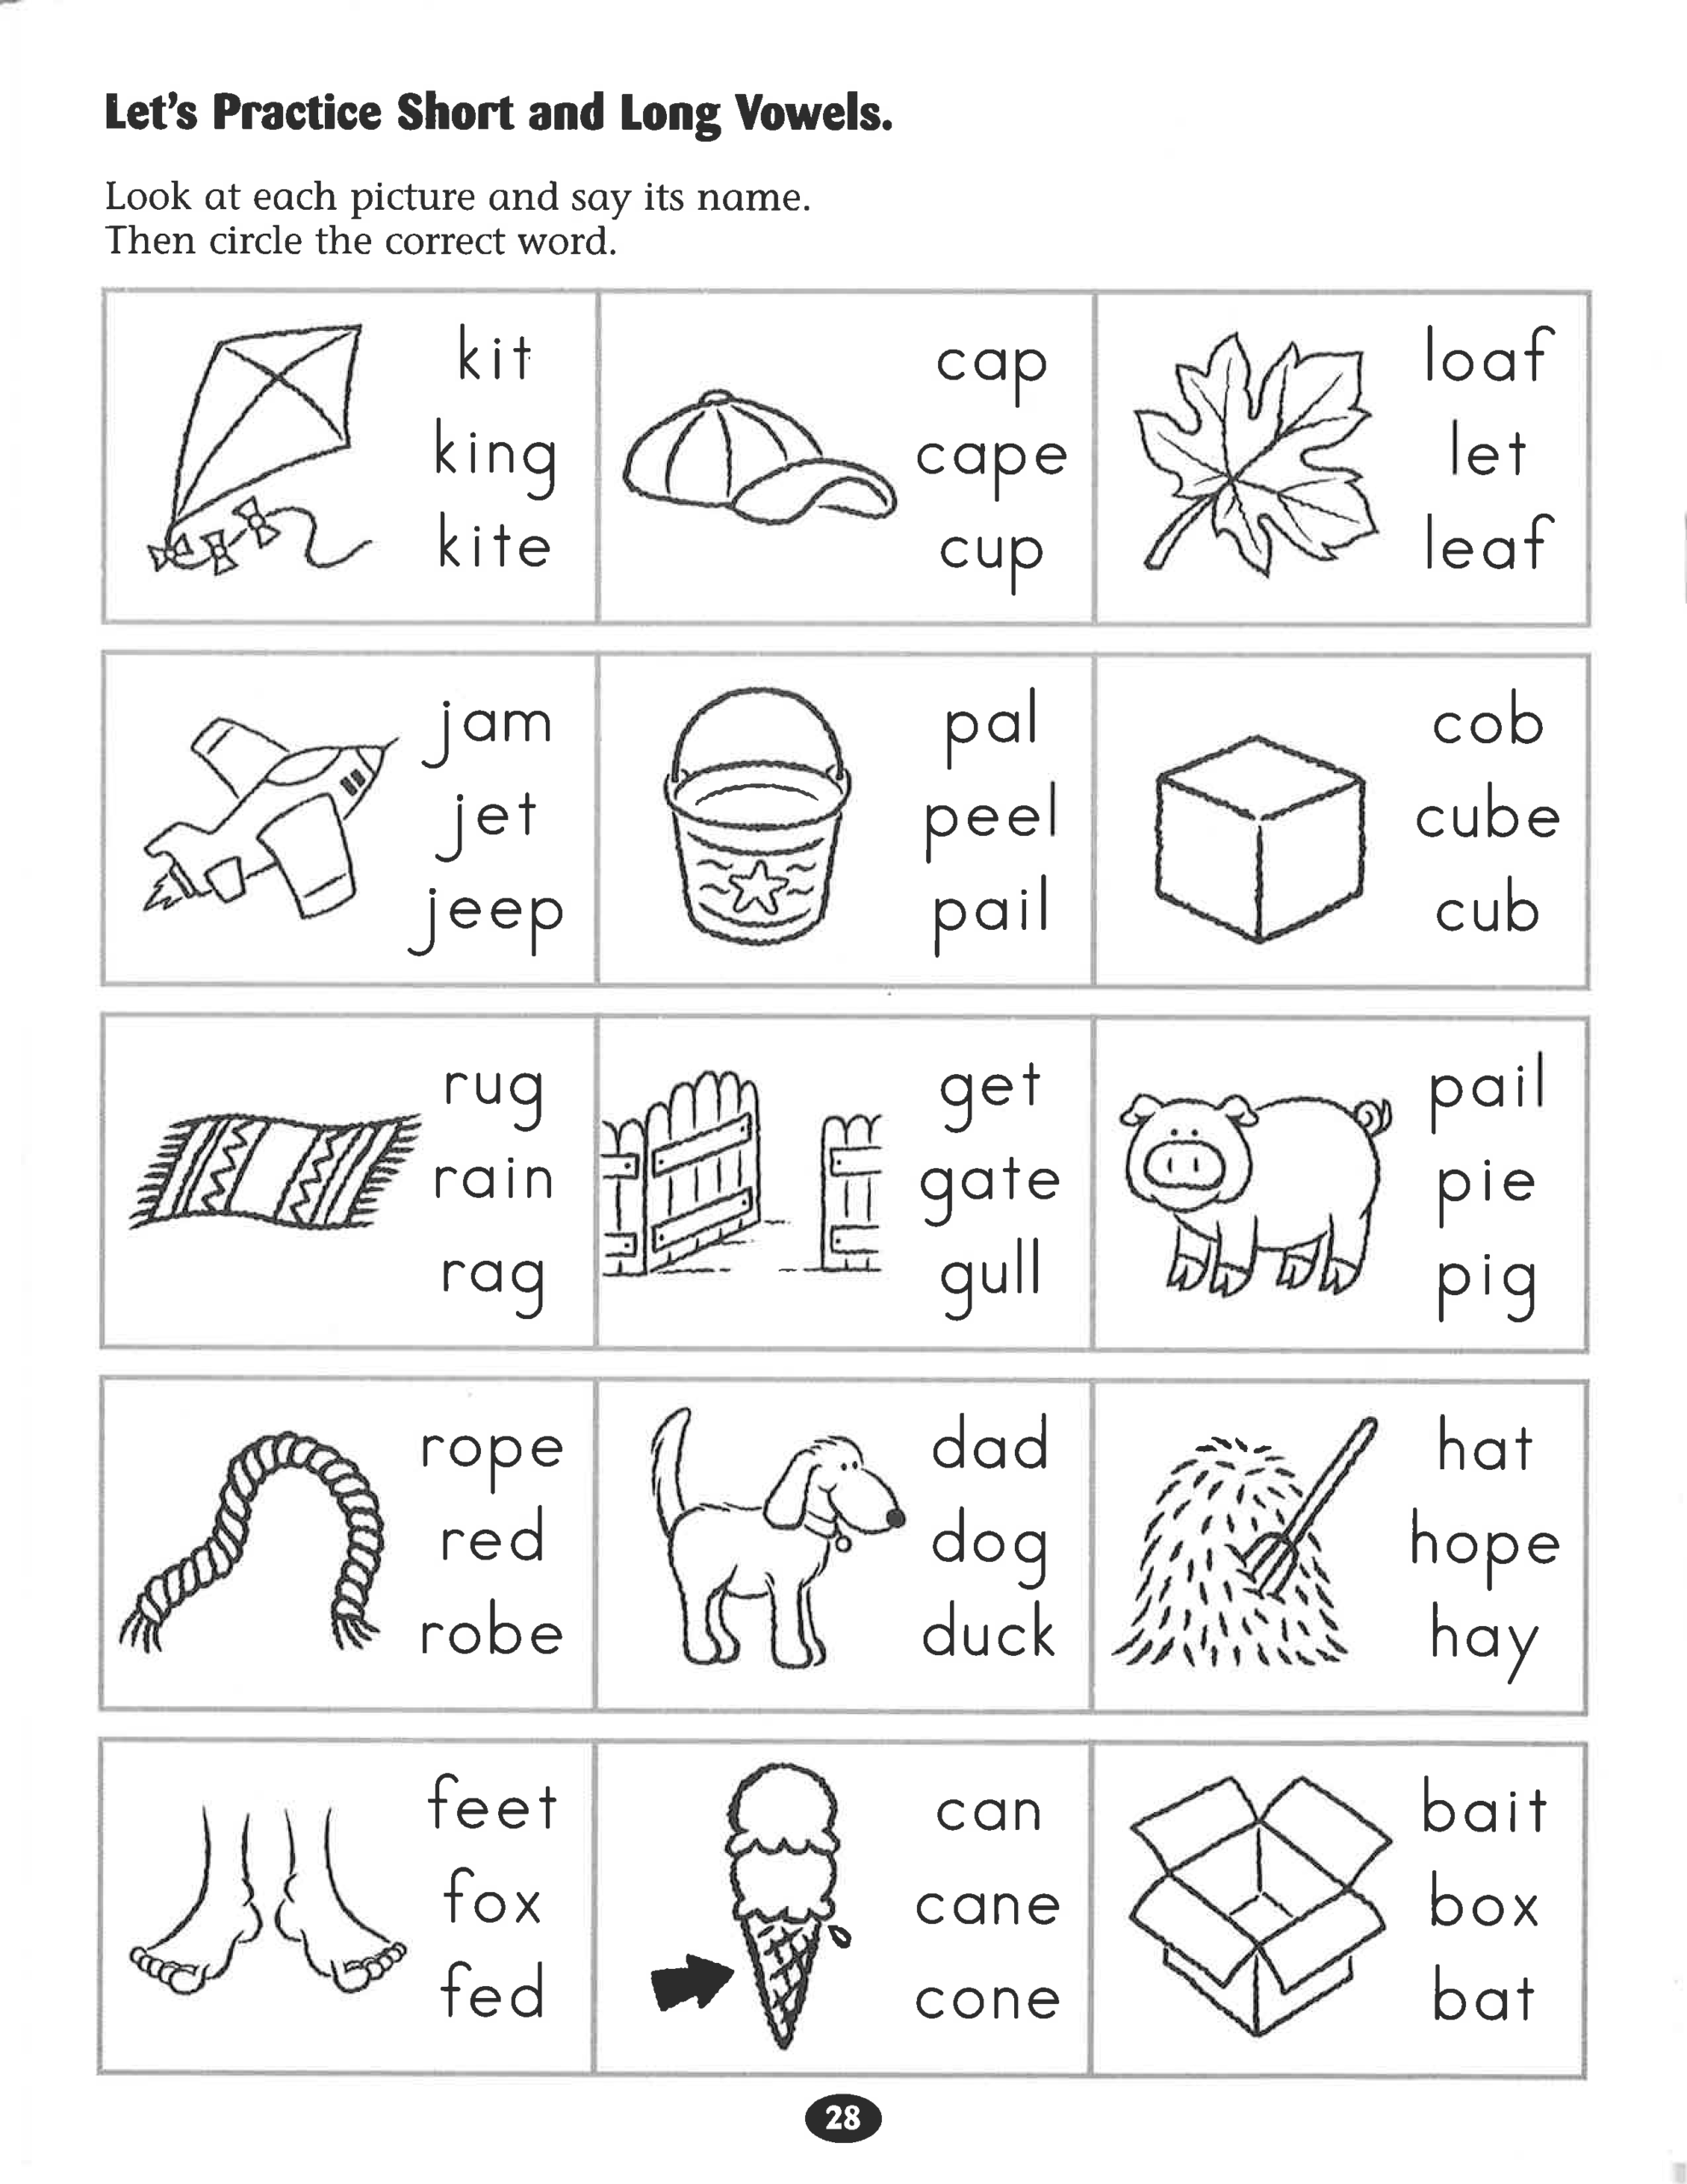 4 Long Vowel Worksheets For First Grade Coloring Book Lets